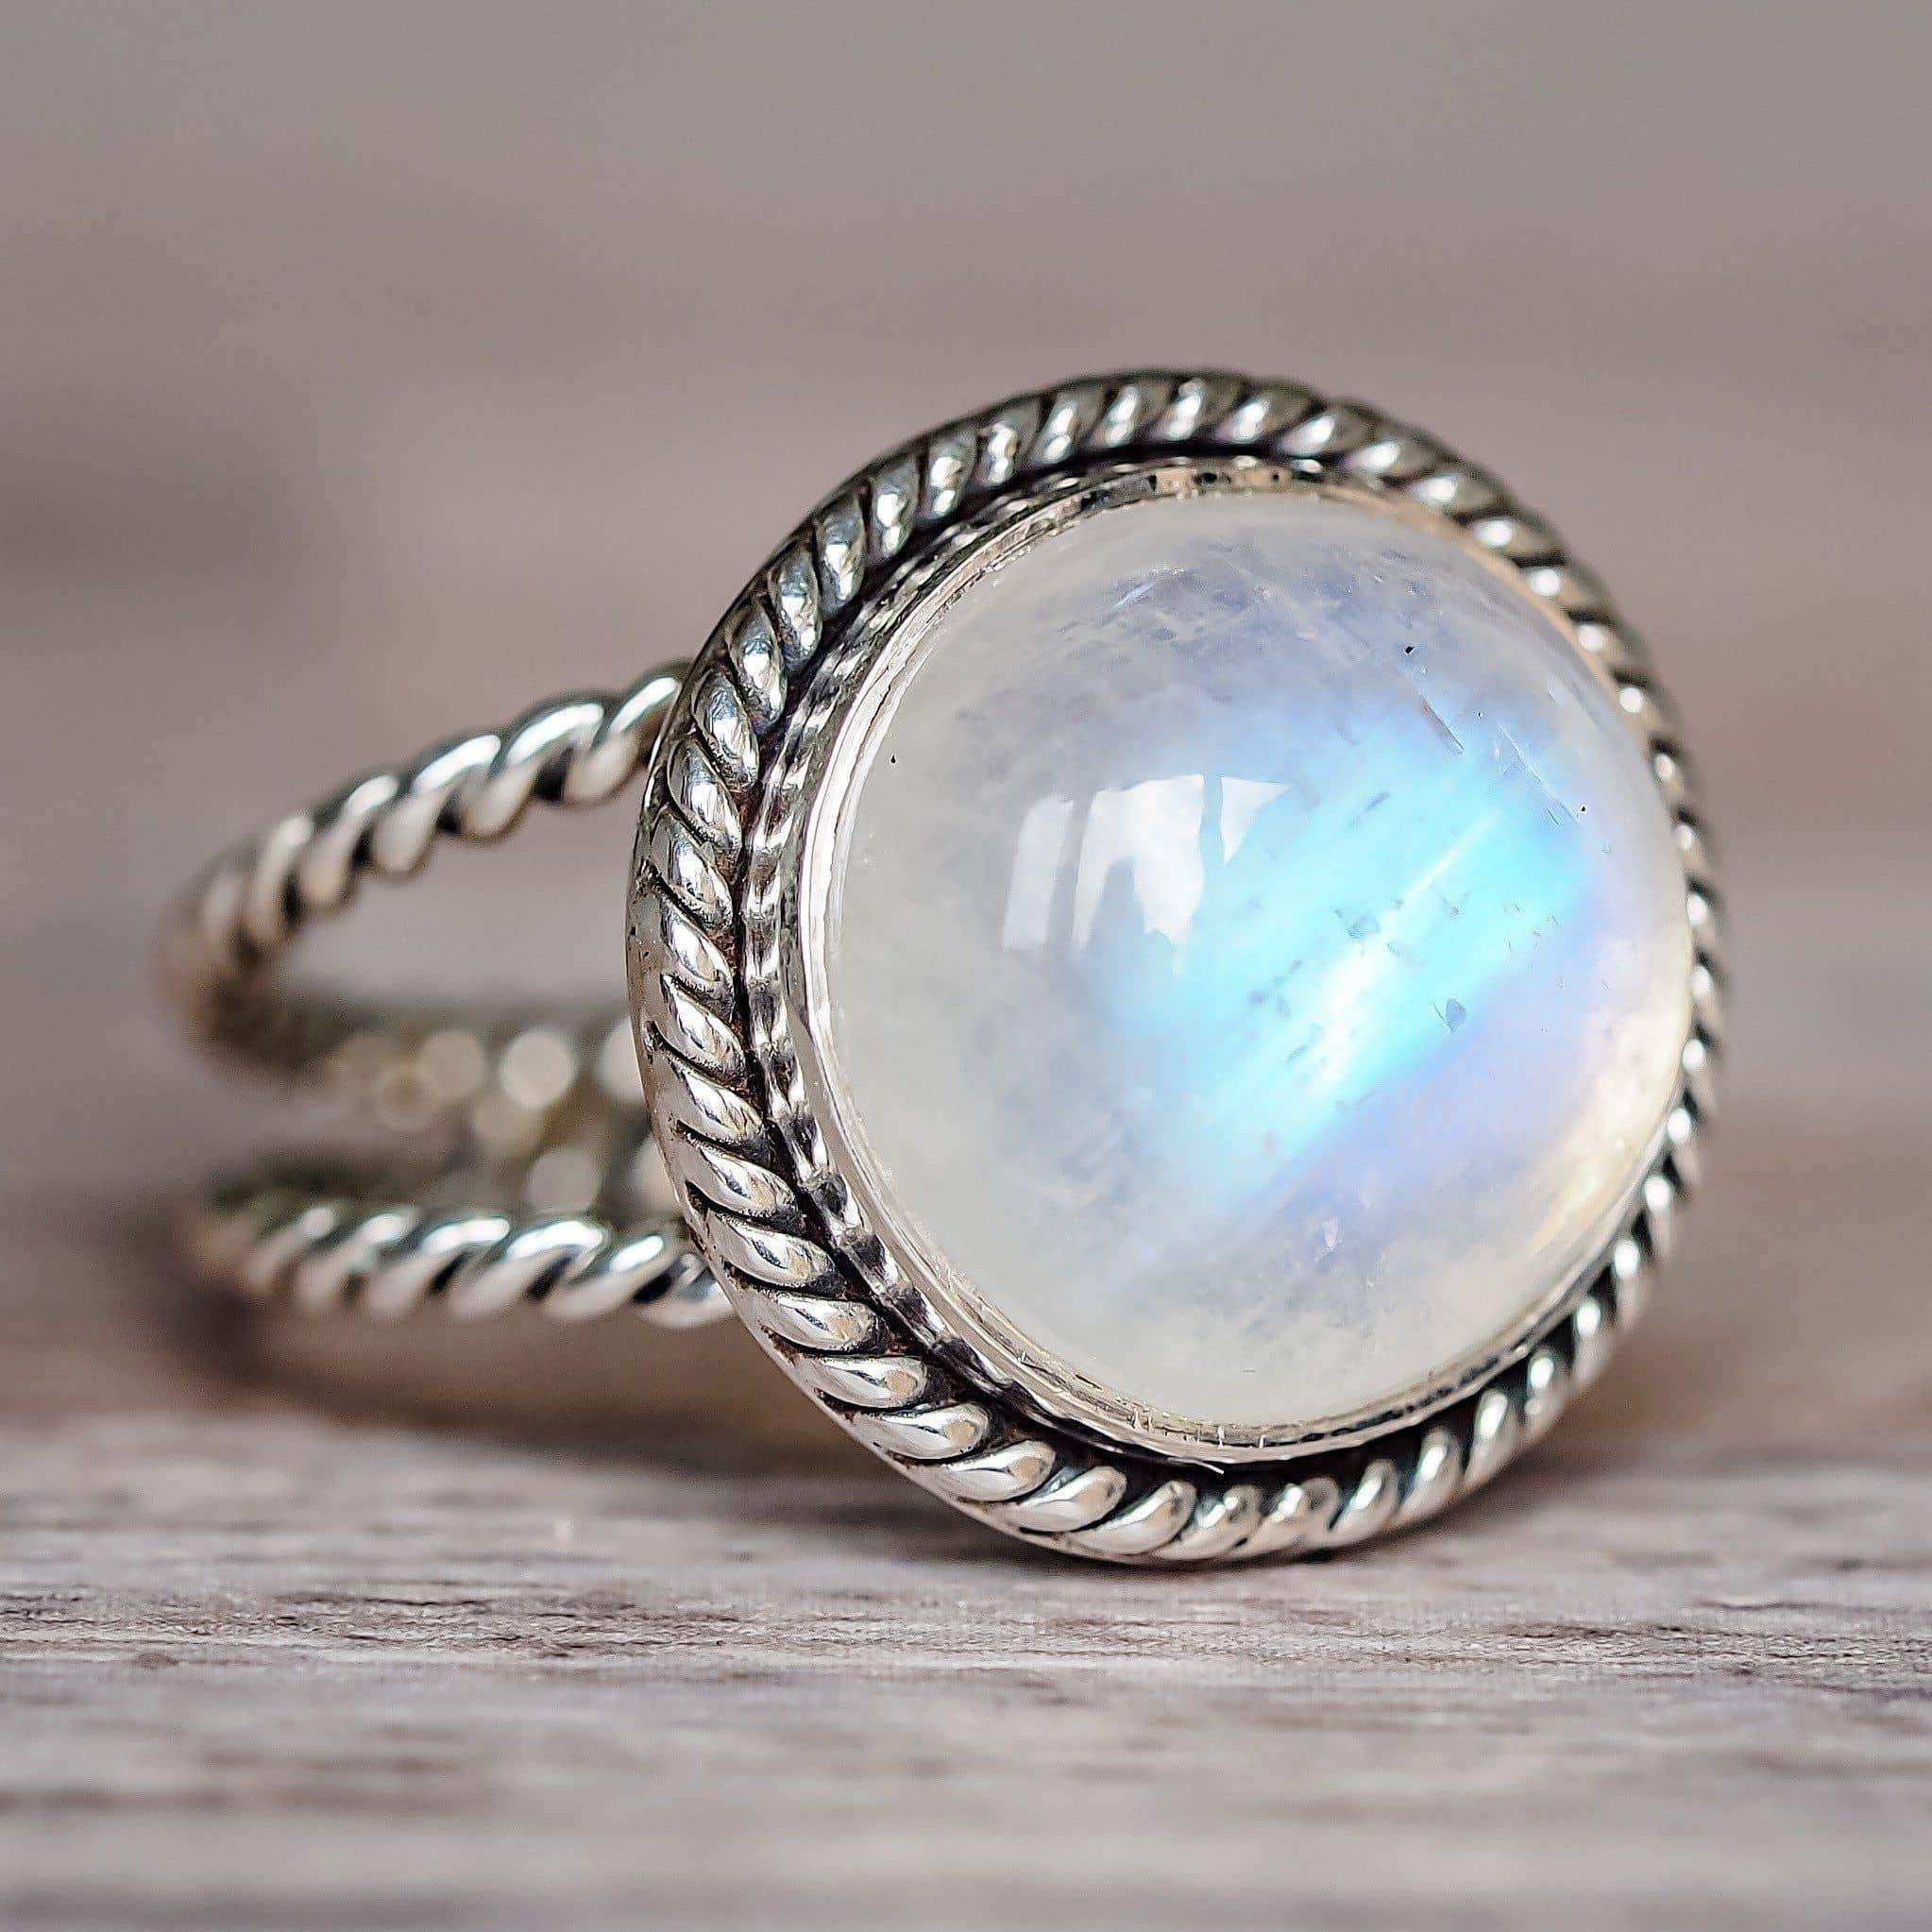 rings of magic moonstone moon shop jewelry stone ring